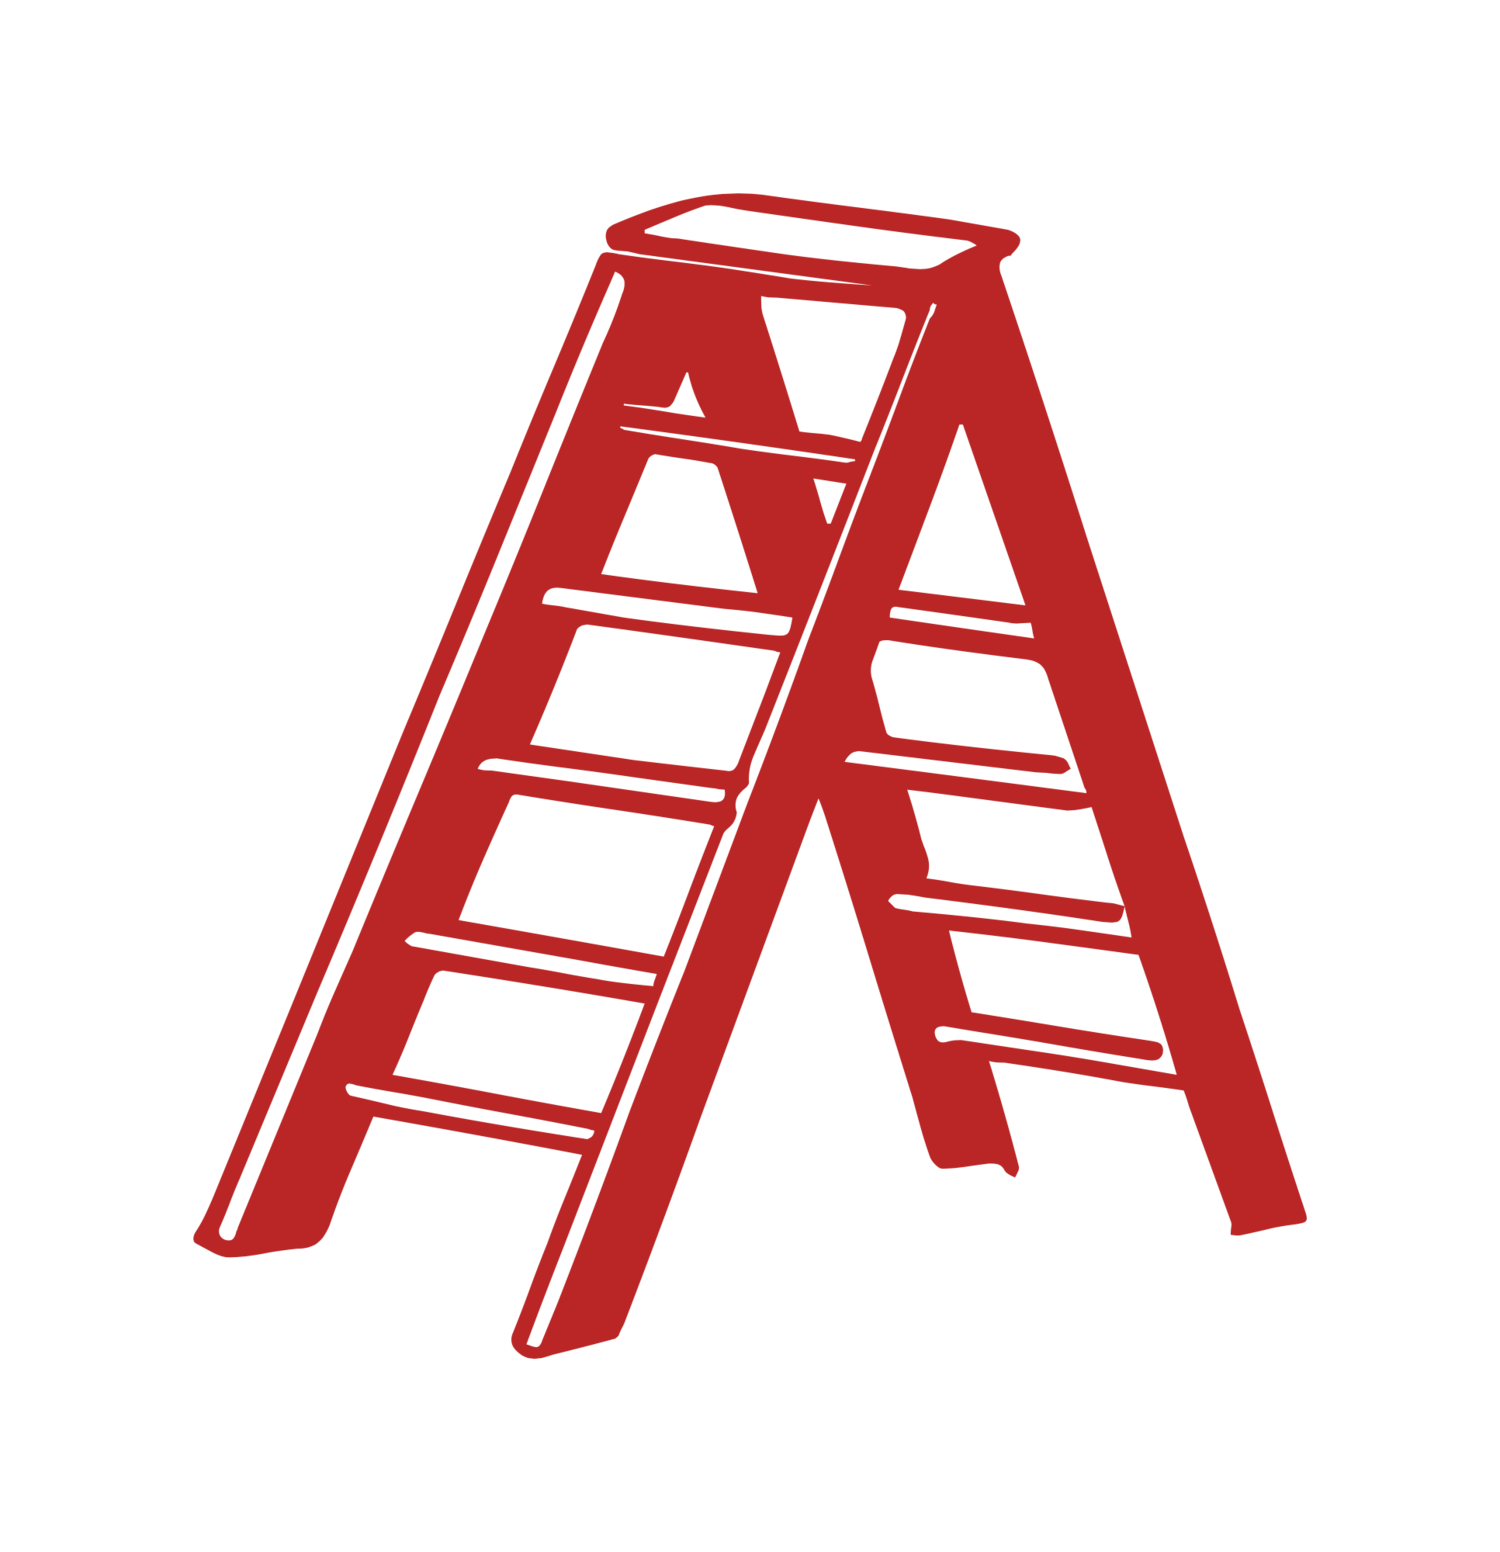 Red Ladder Studio